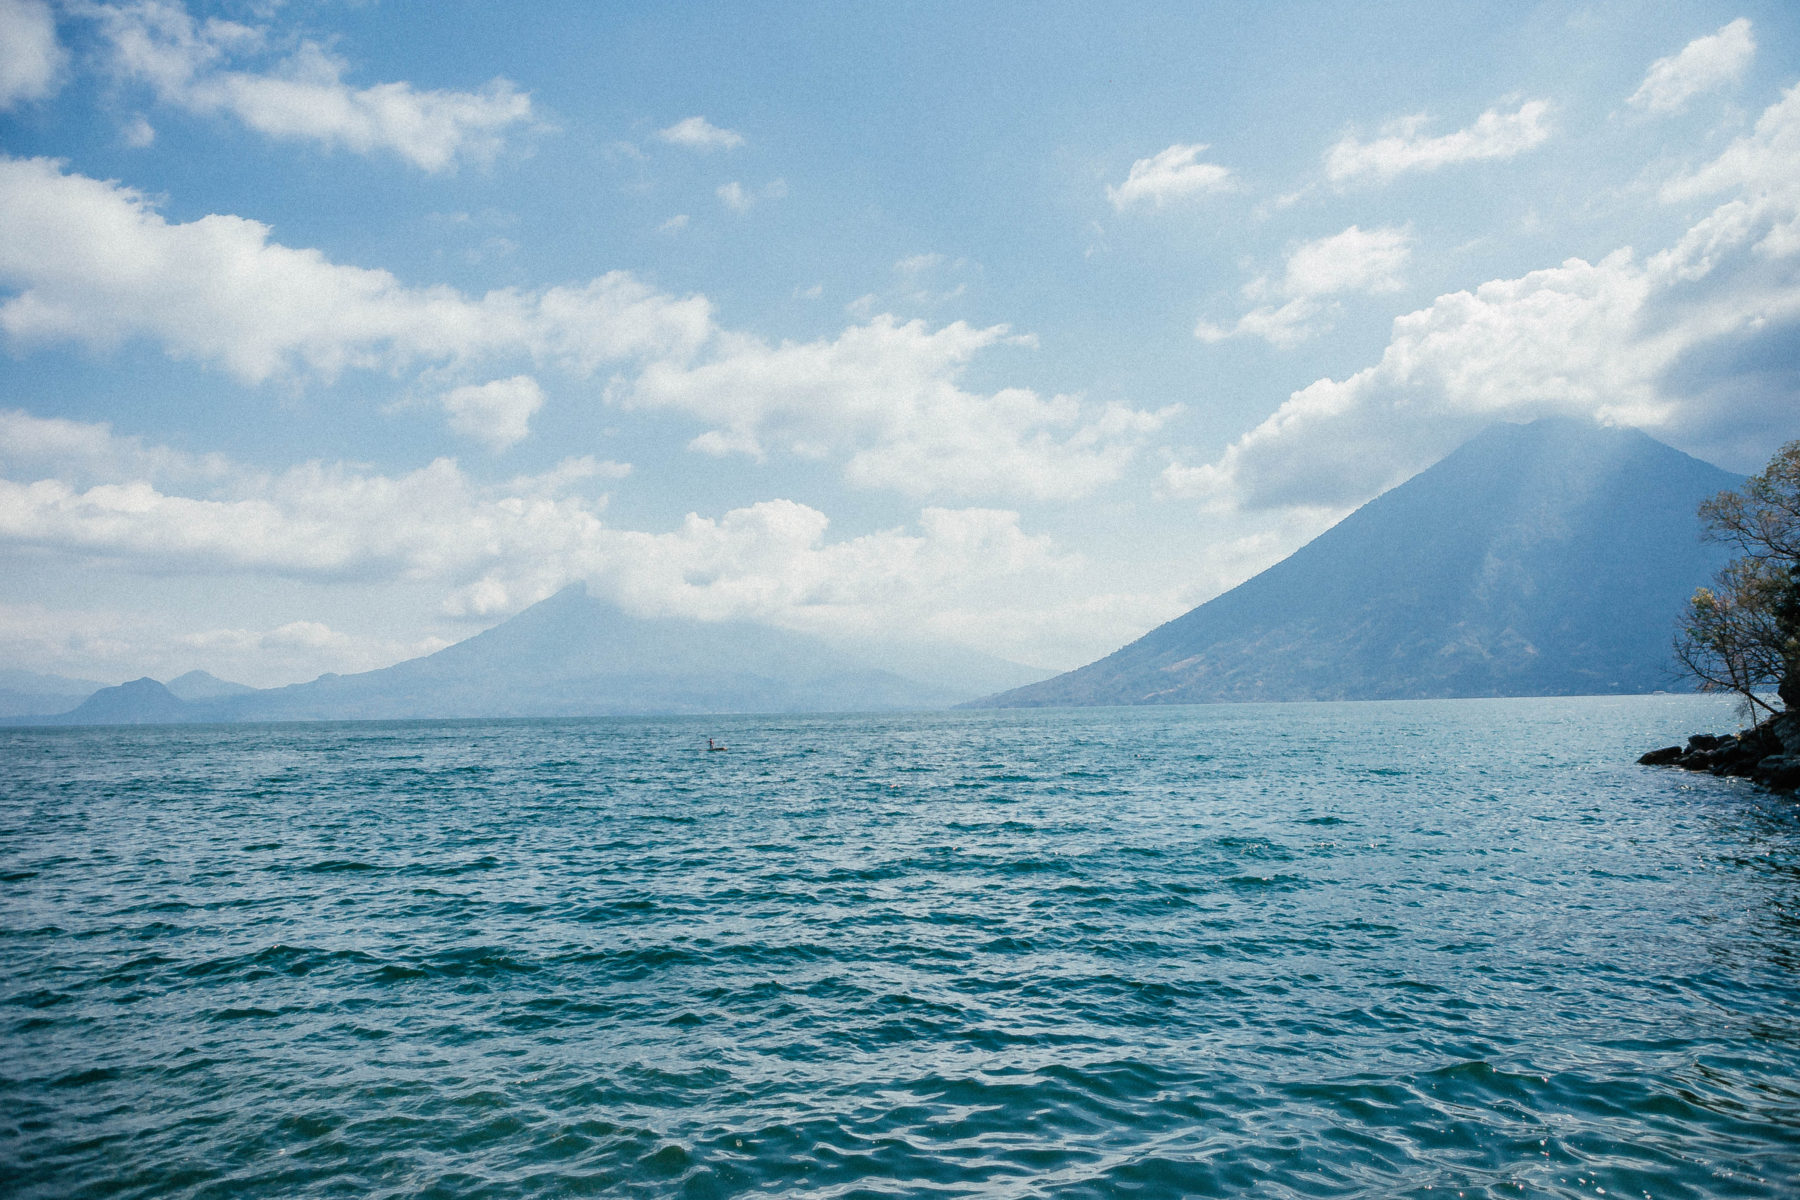 guatemala lake atitlan lago central america most beautiful lake in the world volcanoes sky on fire sunset blue